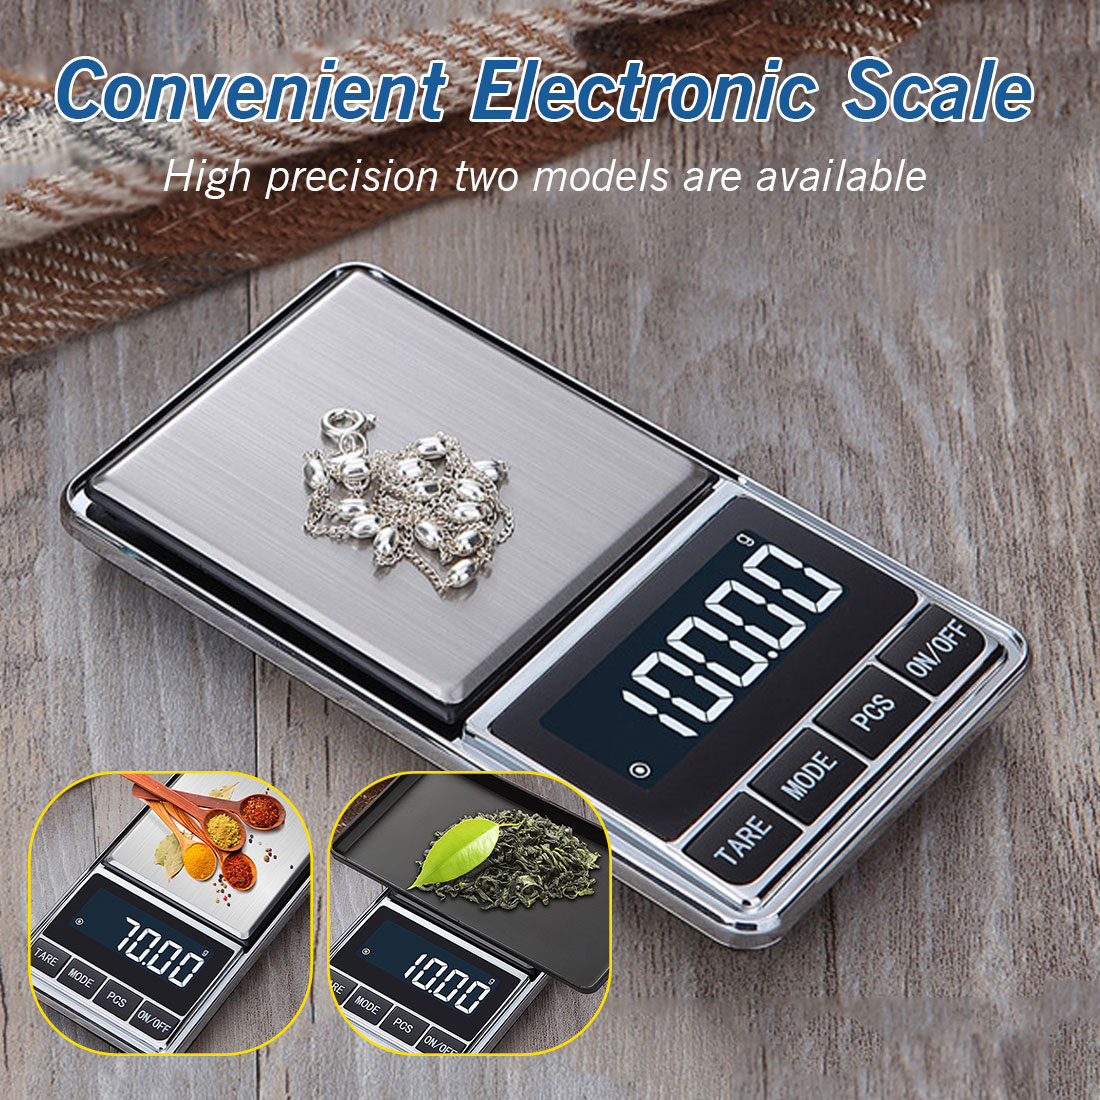 100/500*0.01g Mini Digital Scales Pocket Jewelry Gold Sterling Silver Scales Precision Electronic Balance Gram Weight Scale100/500*0.01g Mini Digital Scales Pocket Jewelry Gold Sterling Silver Scales Precision Electronic Balance Gram Weight Scale